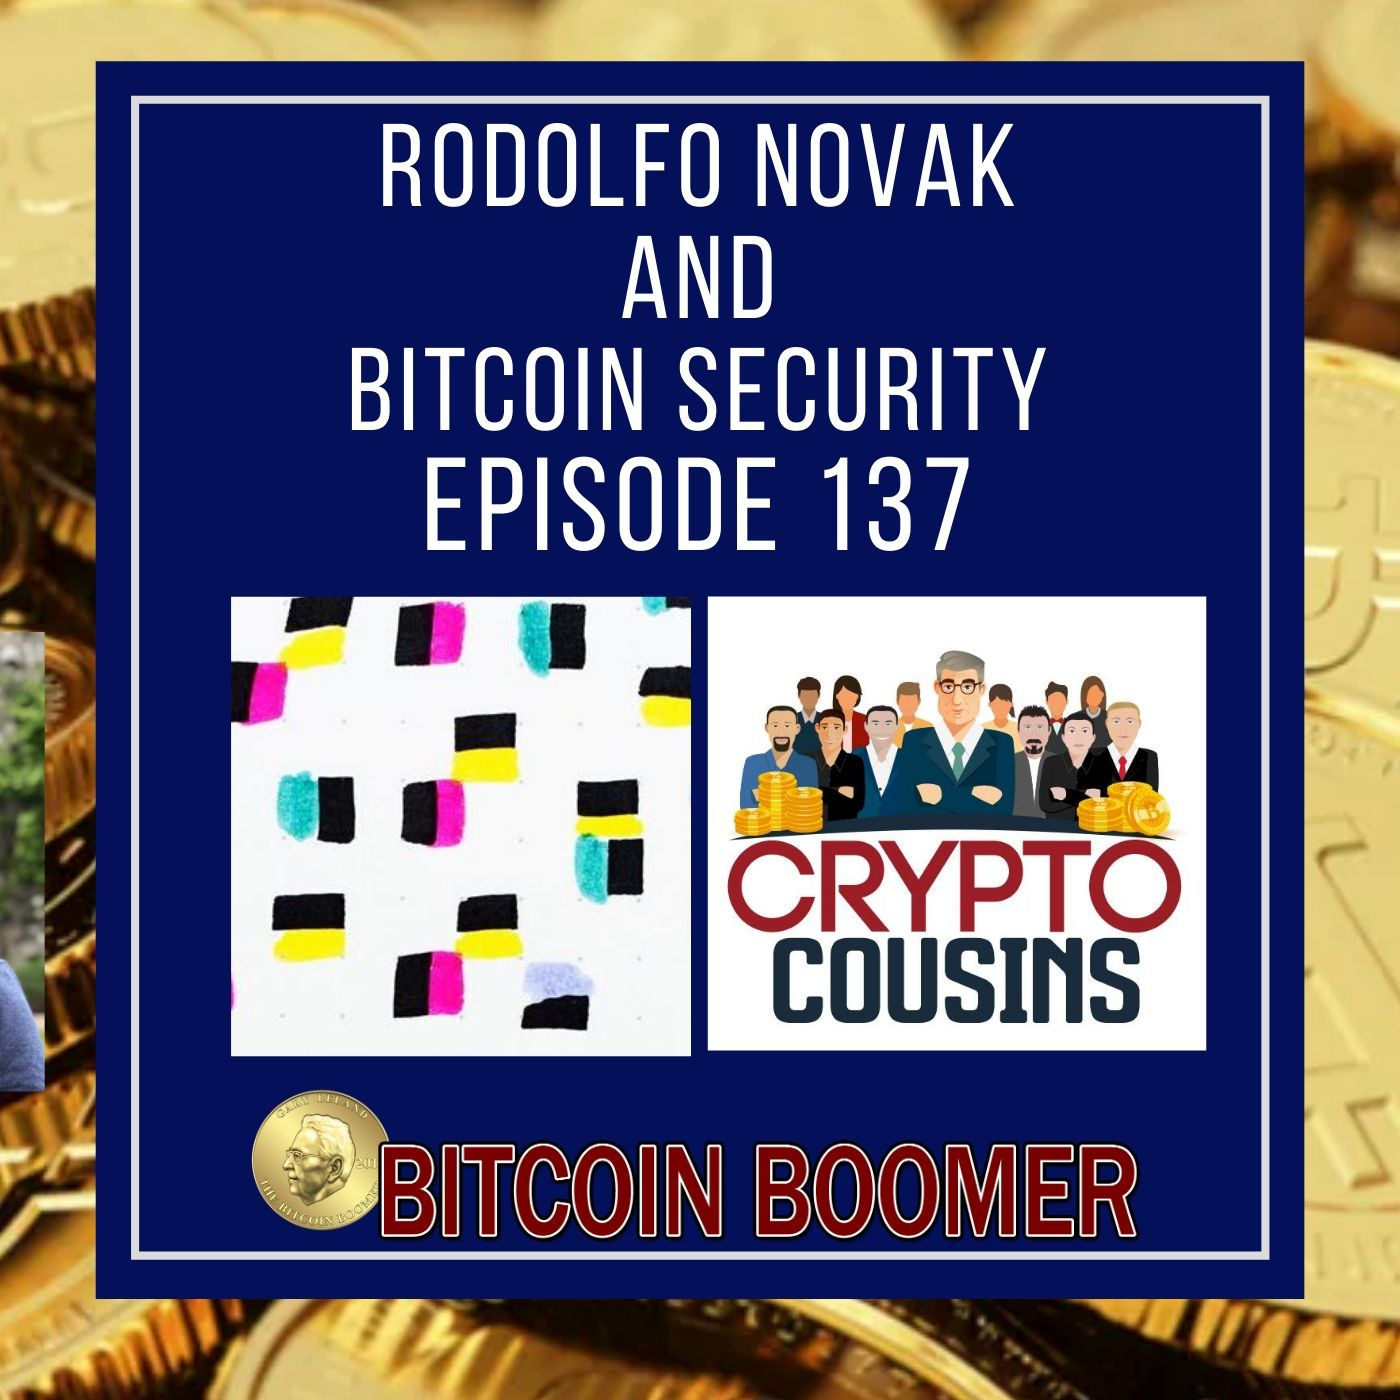 Bitcoin Security - Rodolfo Novak